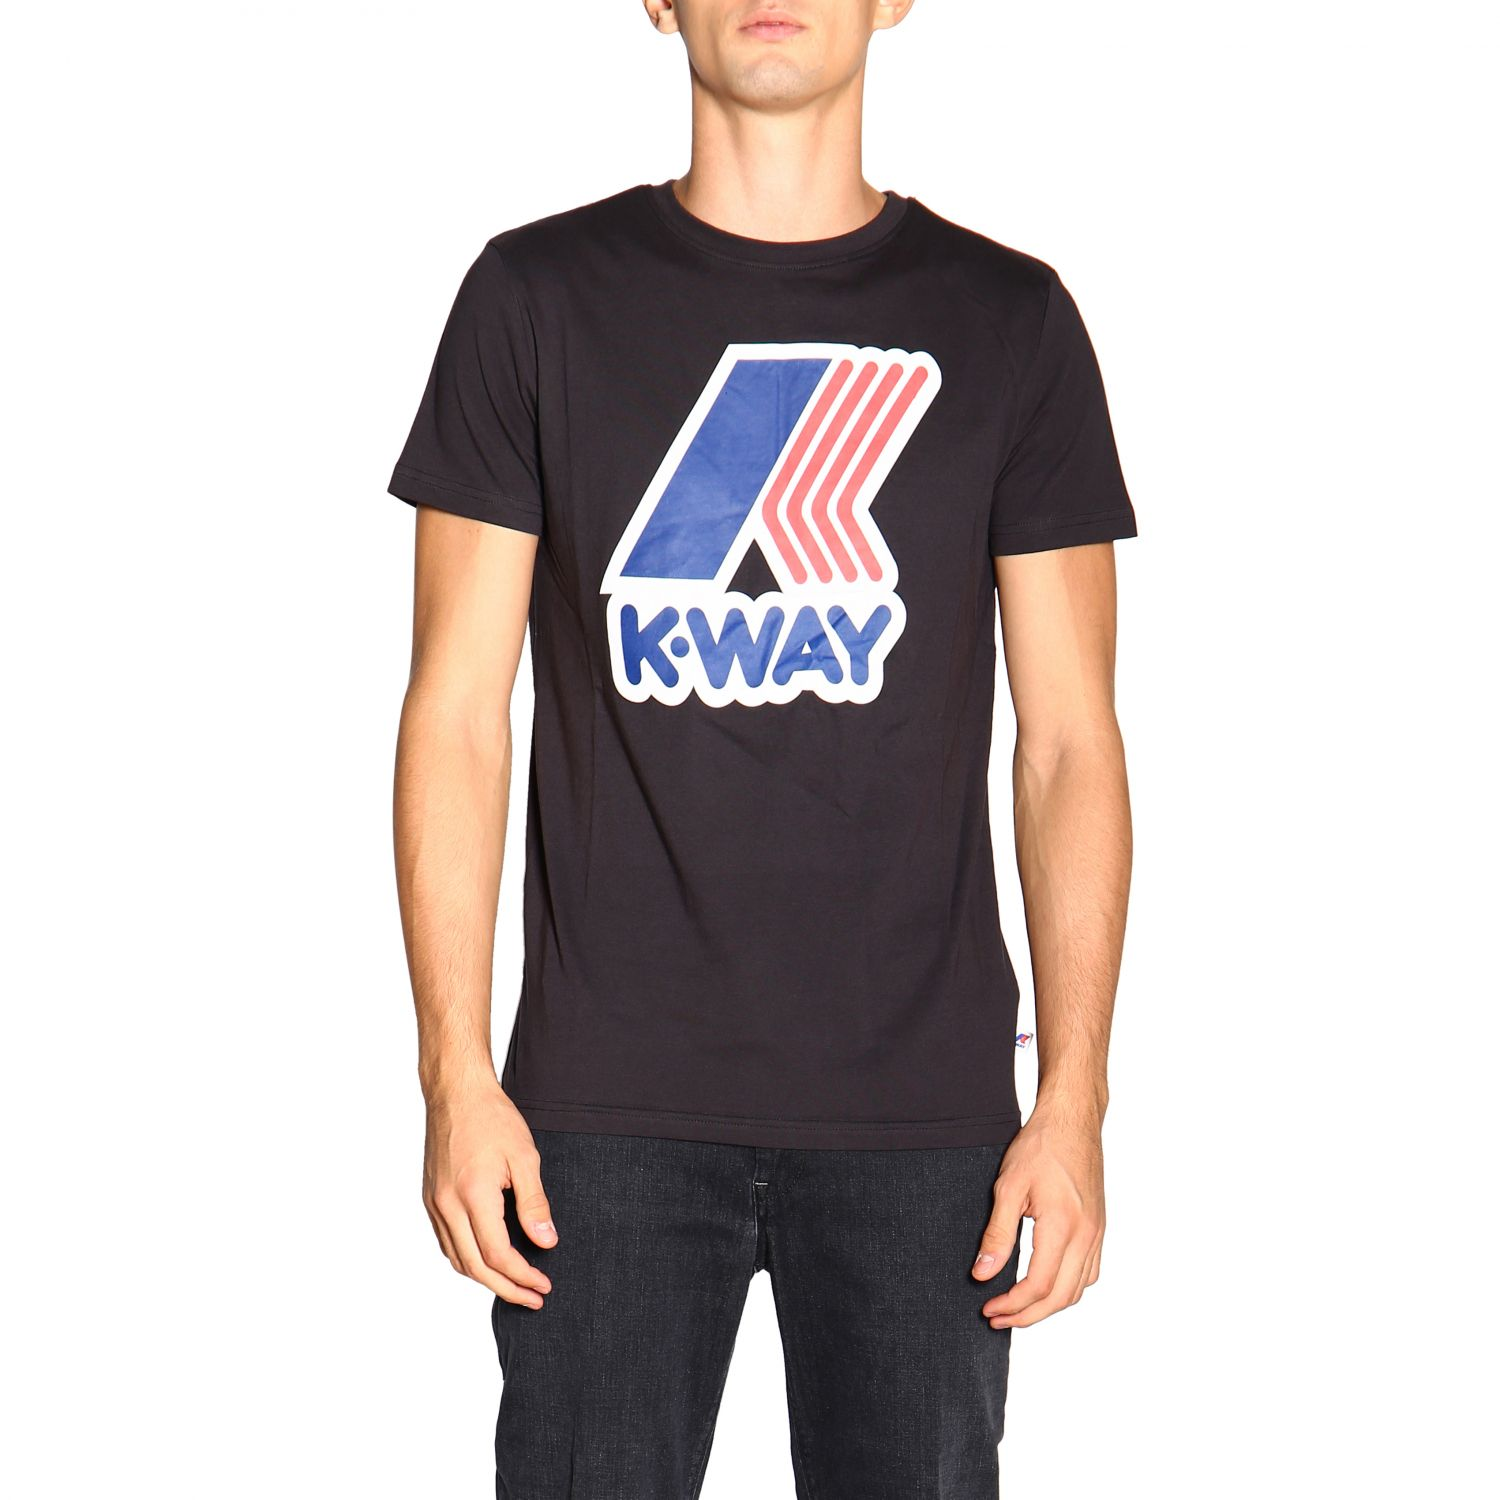 T-shirt men K-way black 1